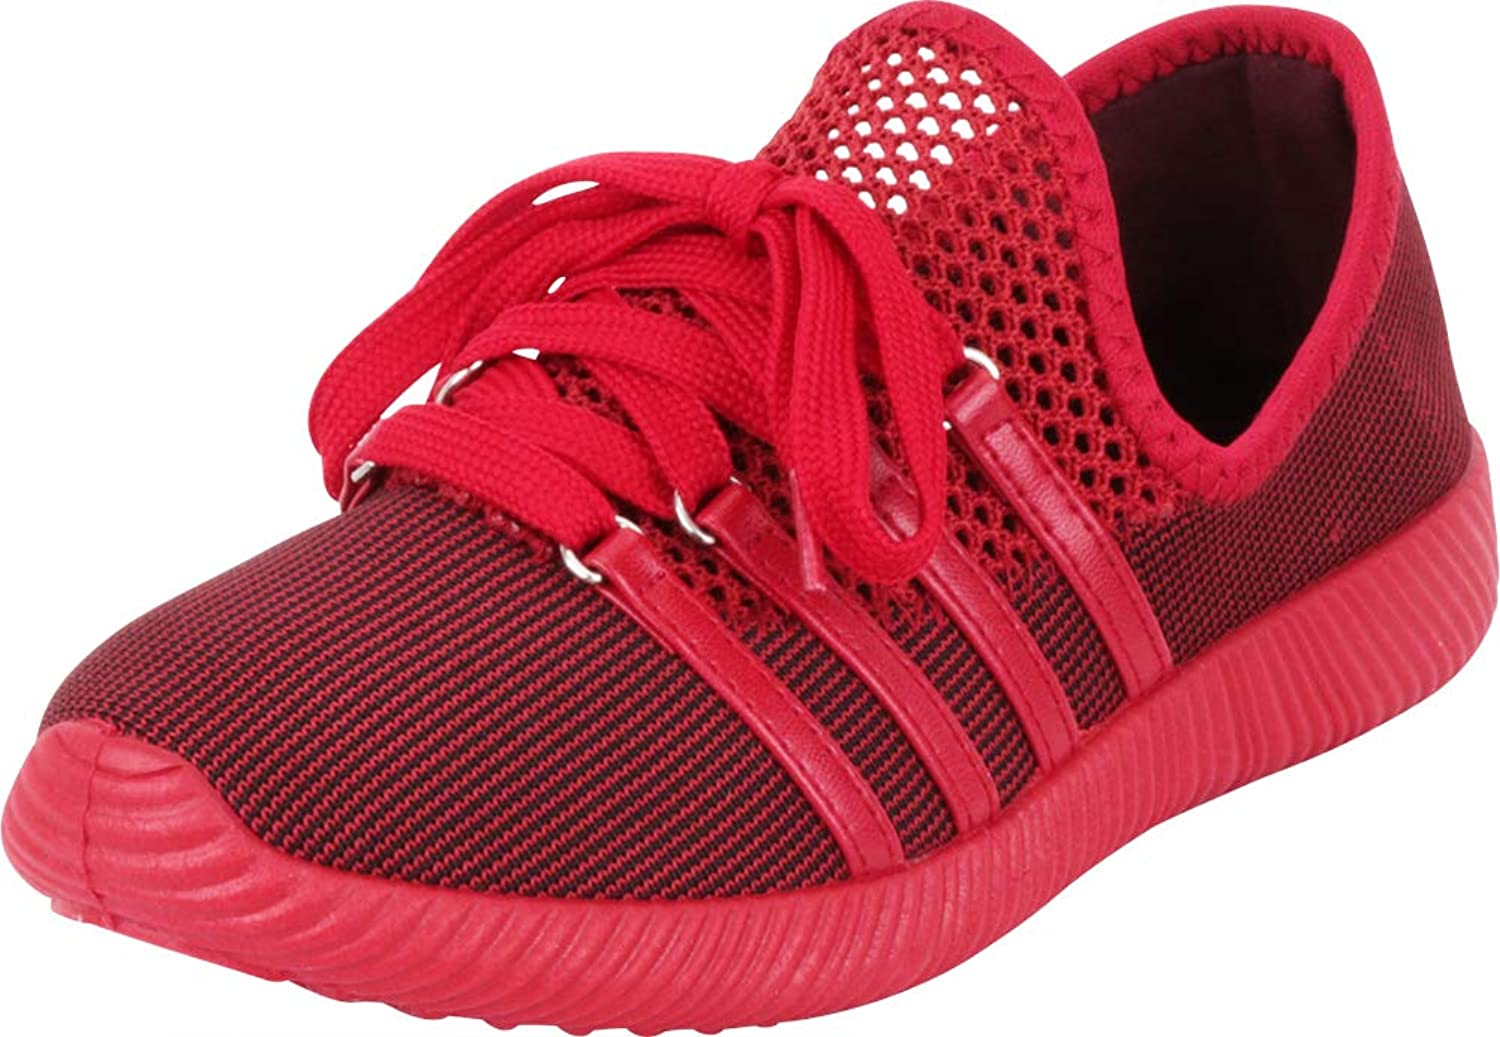 Cambridge Select Women's Breathable Lightweight Mesh Lace-Up Fashion Sneaker